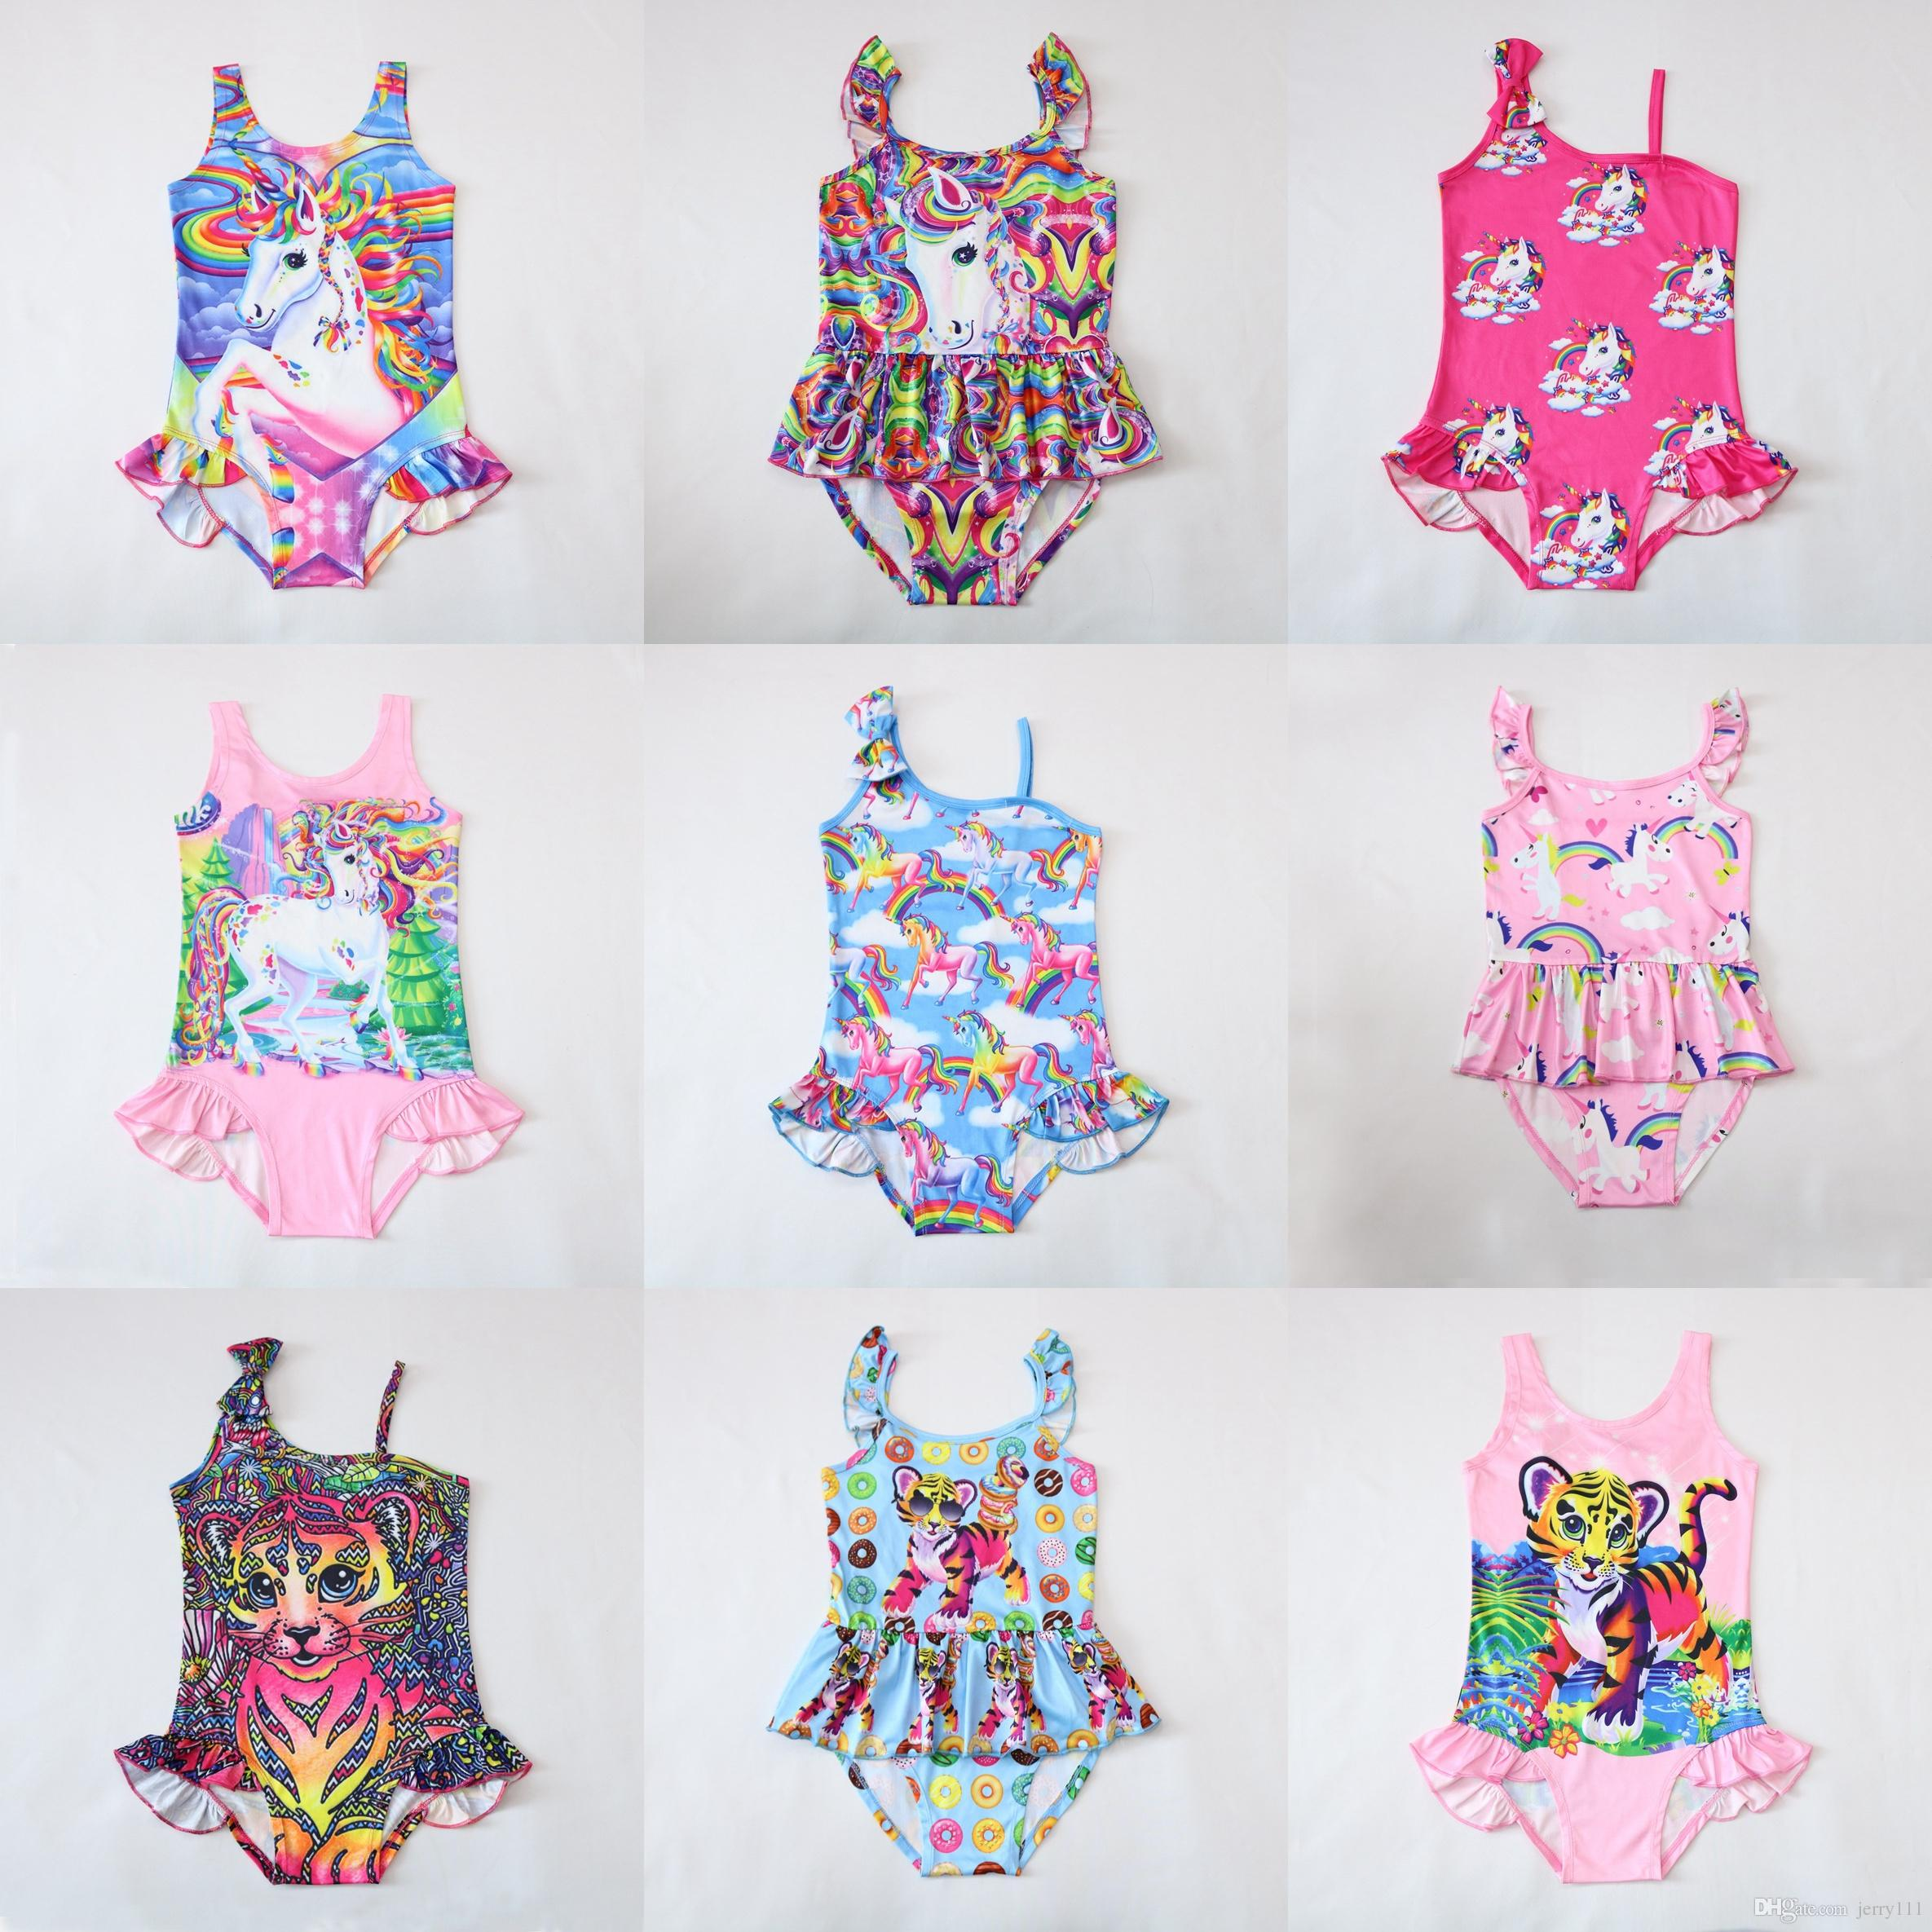 a67253f55b 2019 INS Unicorn Swimwear One Piece Tiger Swimsuit Bikini Big Kids Summer  Cartoon Infant Swim Bathing Suits Beachwear 12 Design LC738 1 From  Jerry111